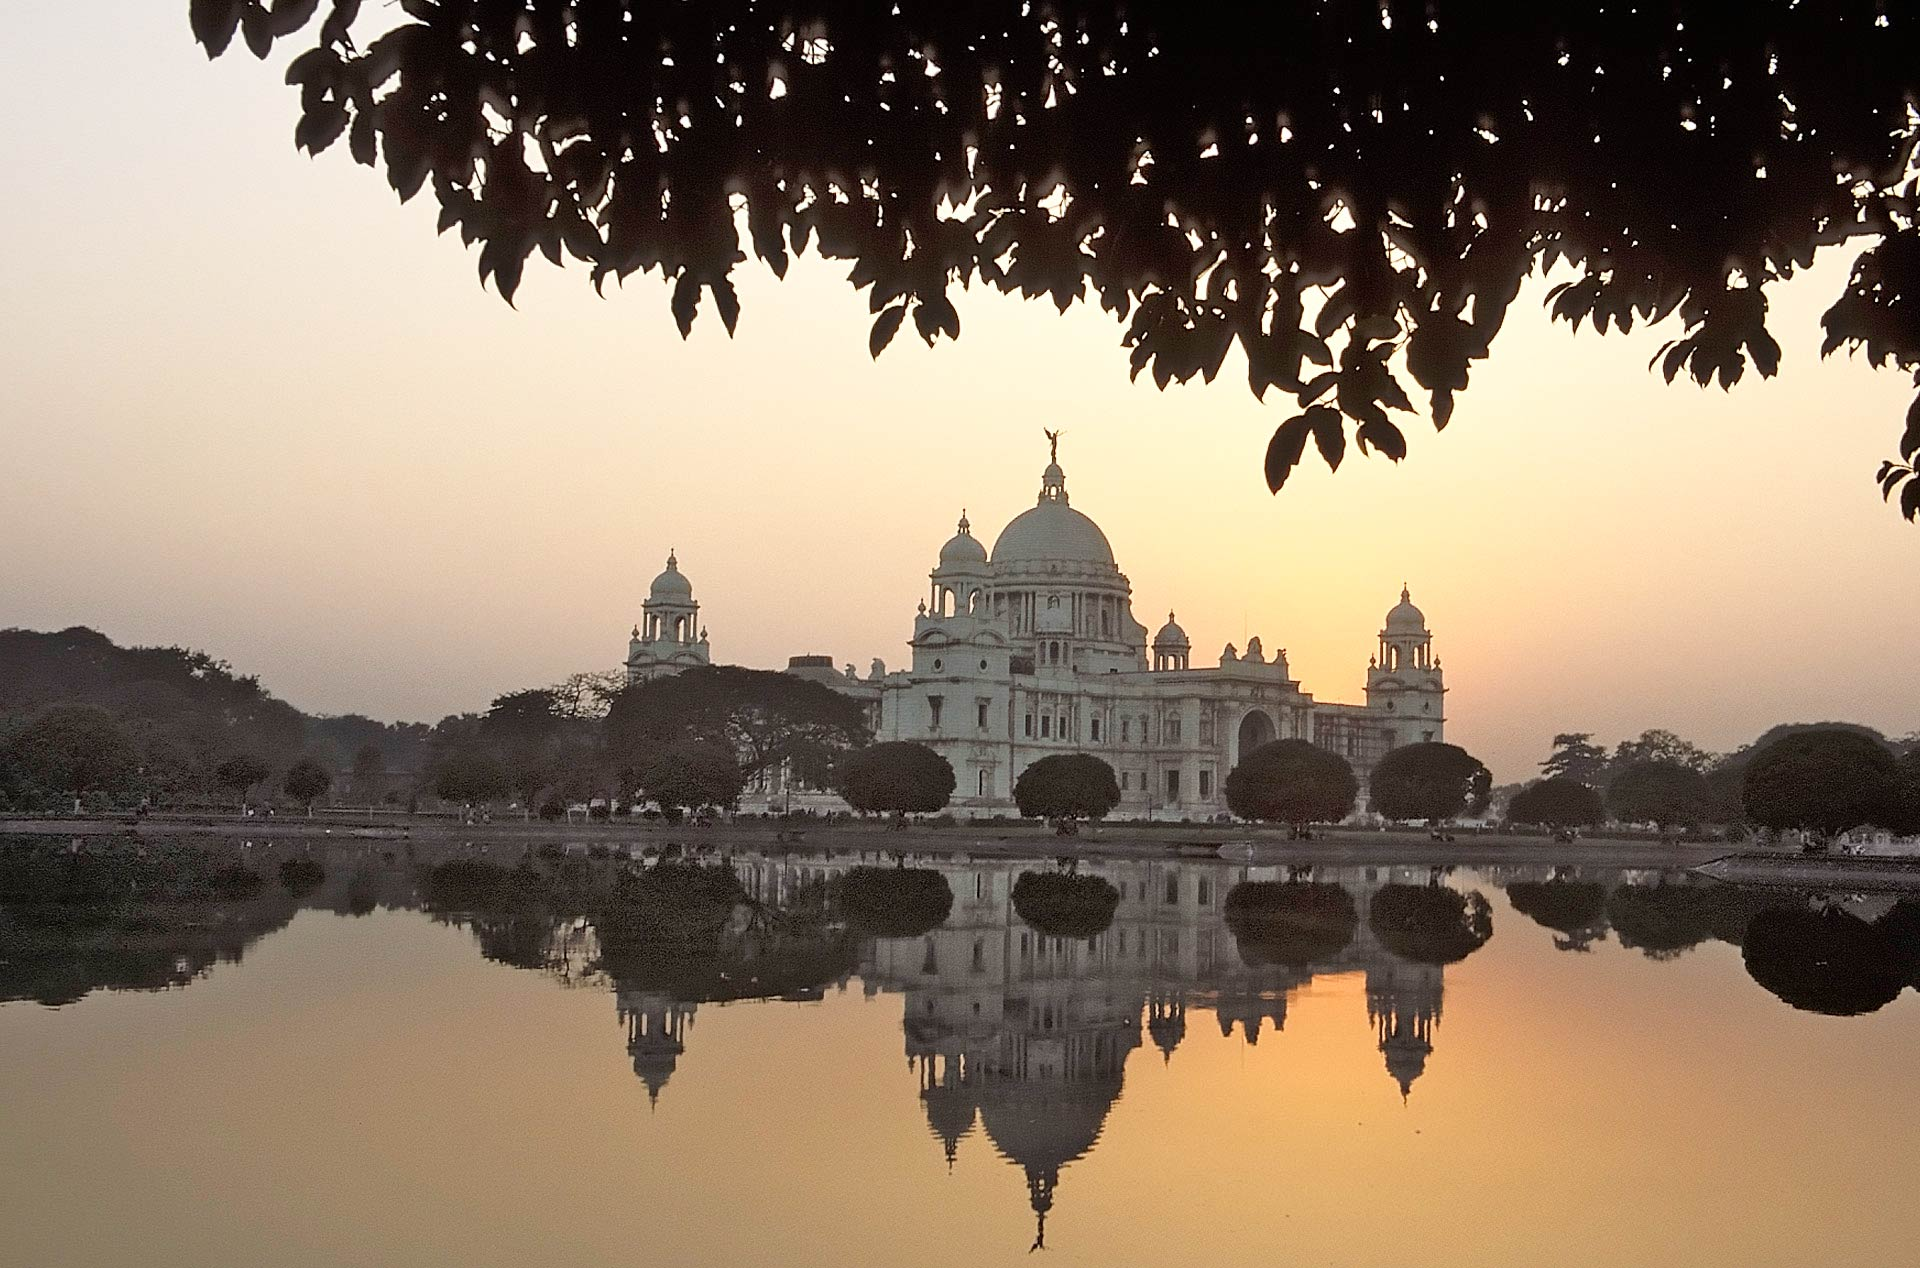 Victoria Memorial at sunset, Kolkata, West Bengal, India